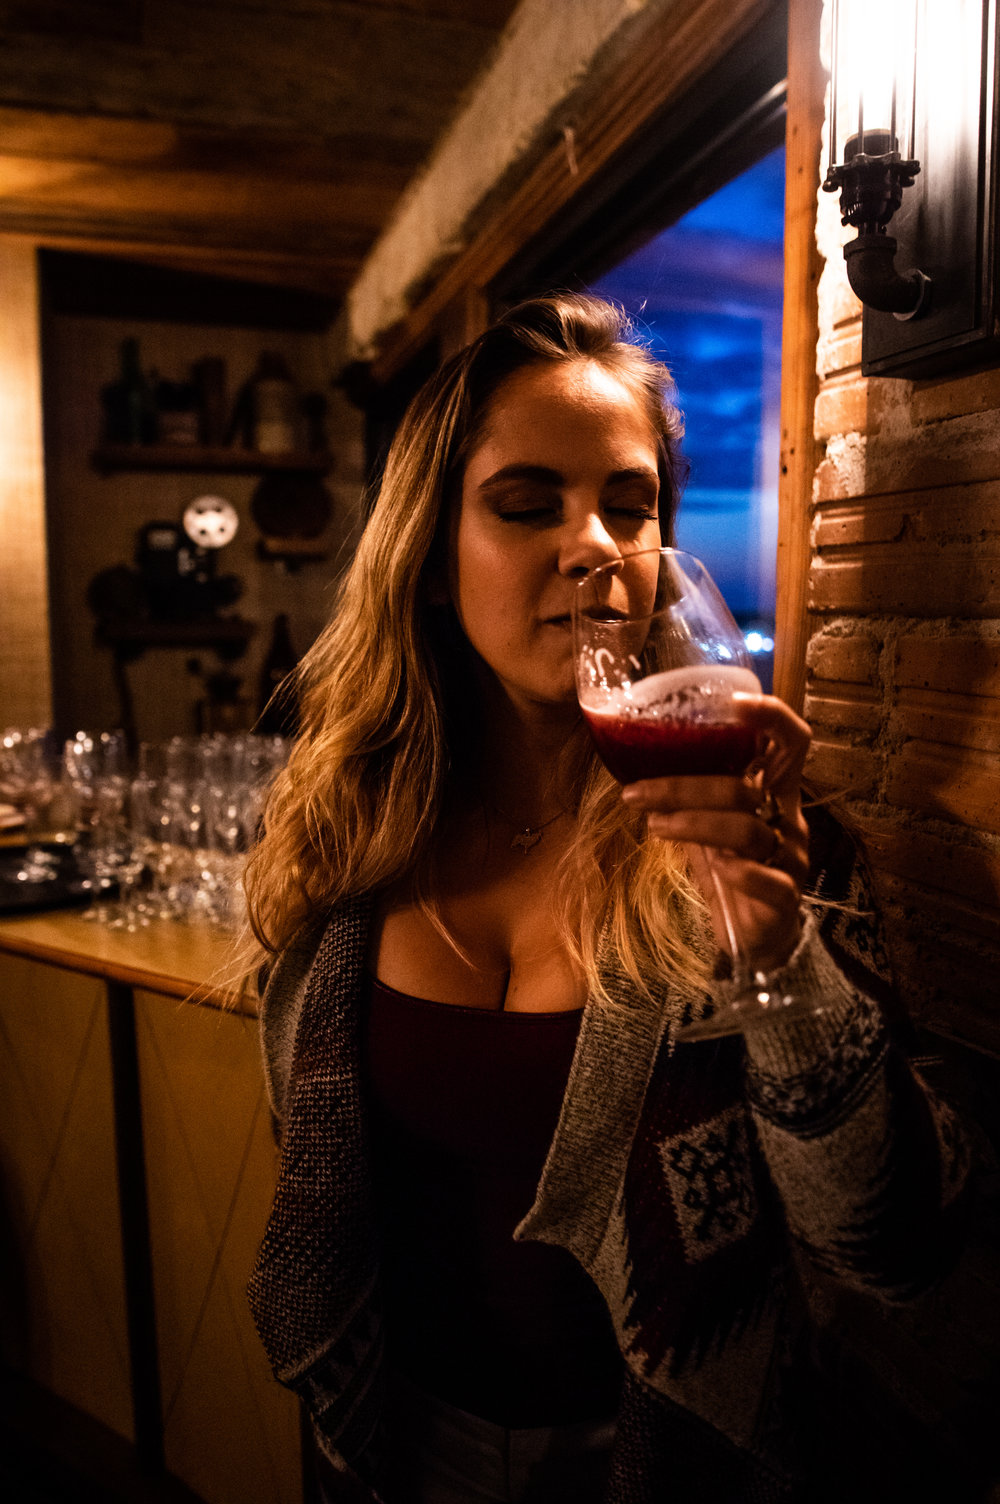 Jennifer Alexander - founder of the beer blog The Beerded Lady - taking a sip of the Blueberry Fortune. Jennifer helped Seth Morgan to both solidify the concept for the Blueberry Fortune and in the brewing process itself.